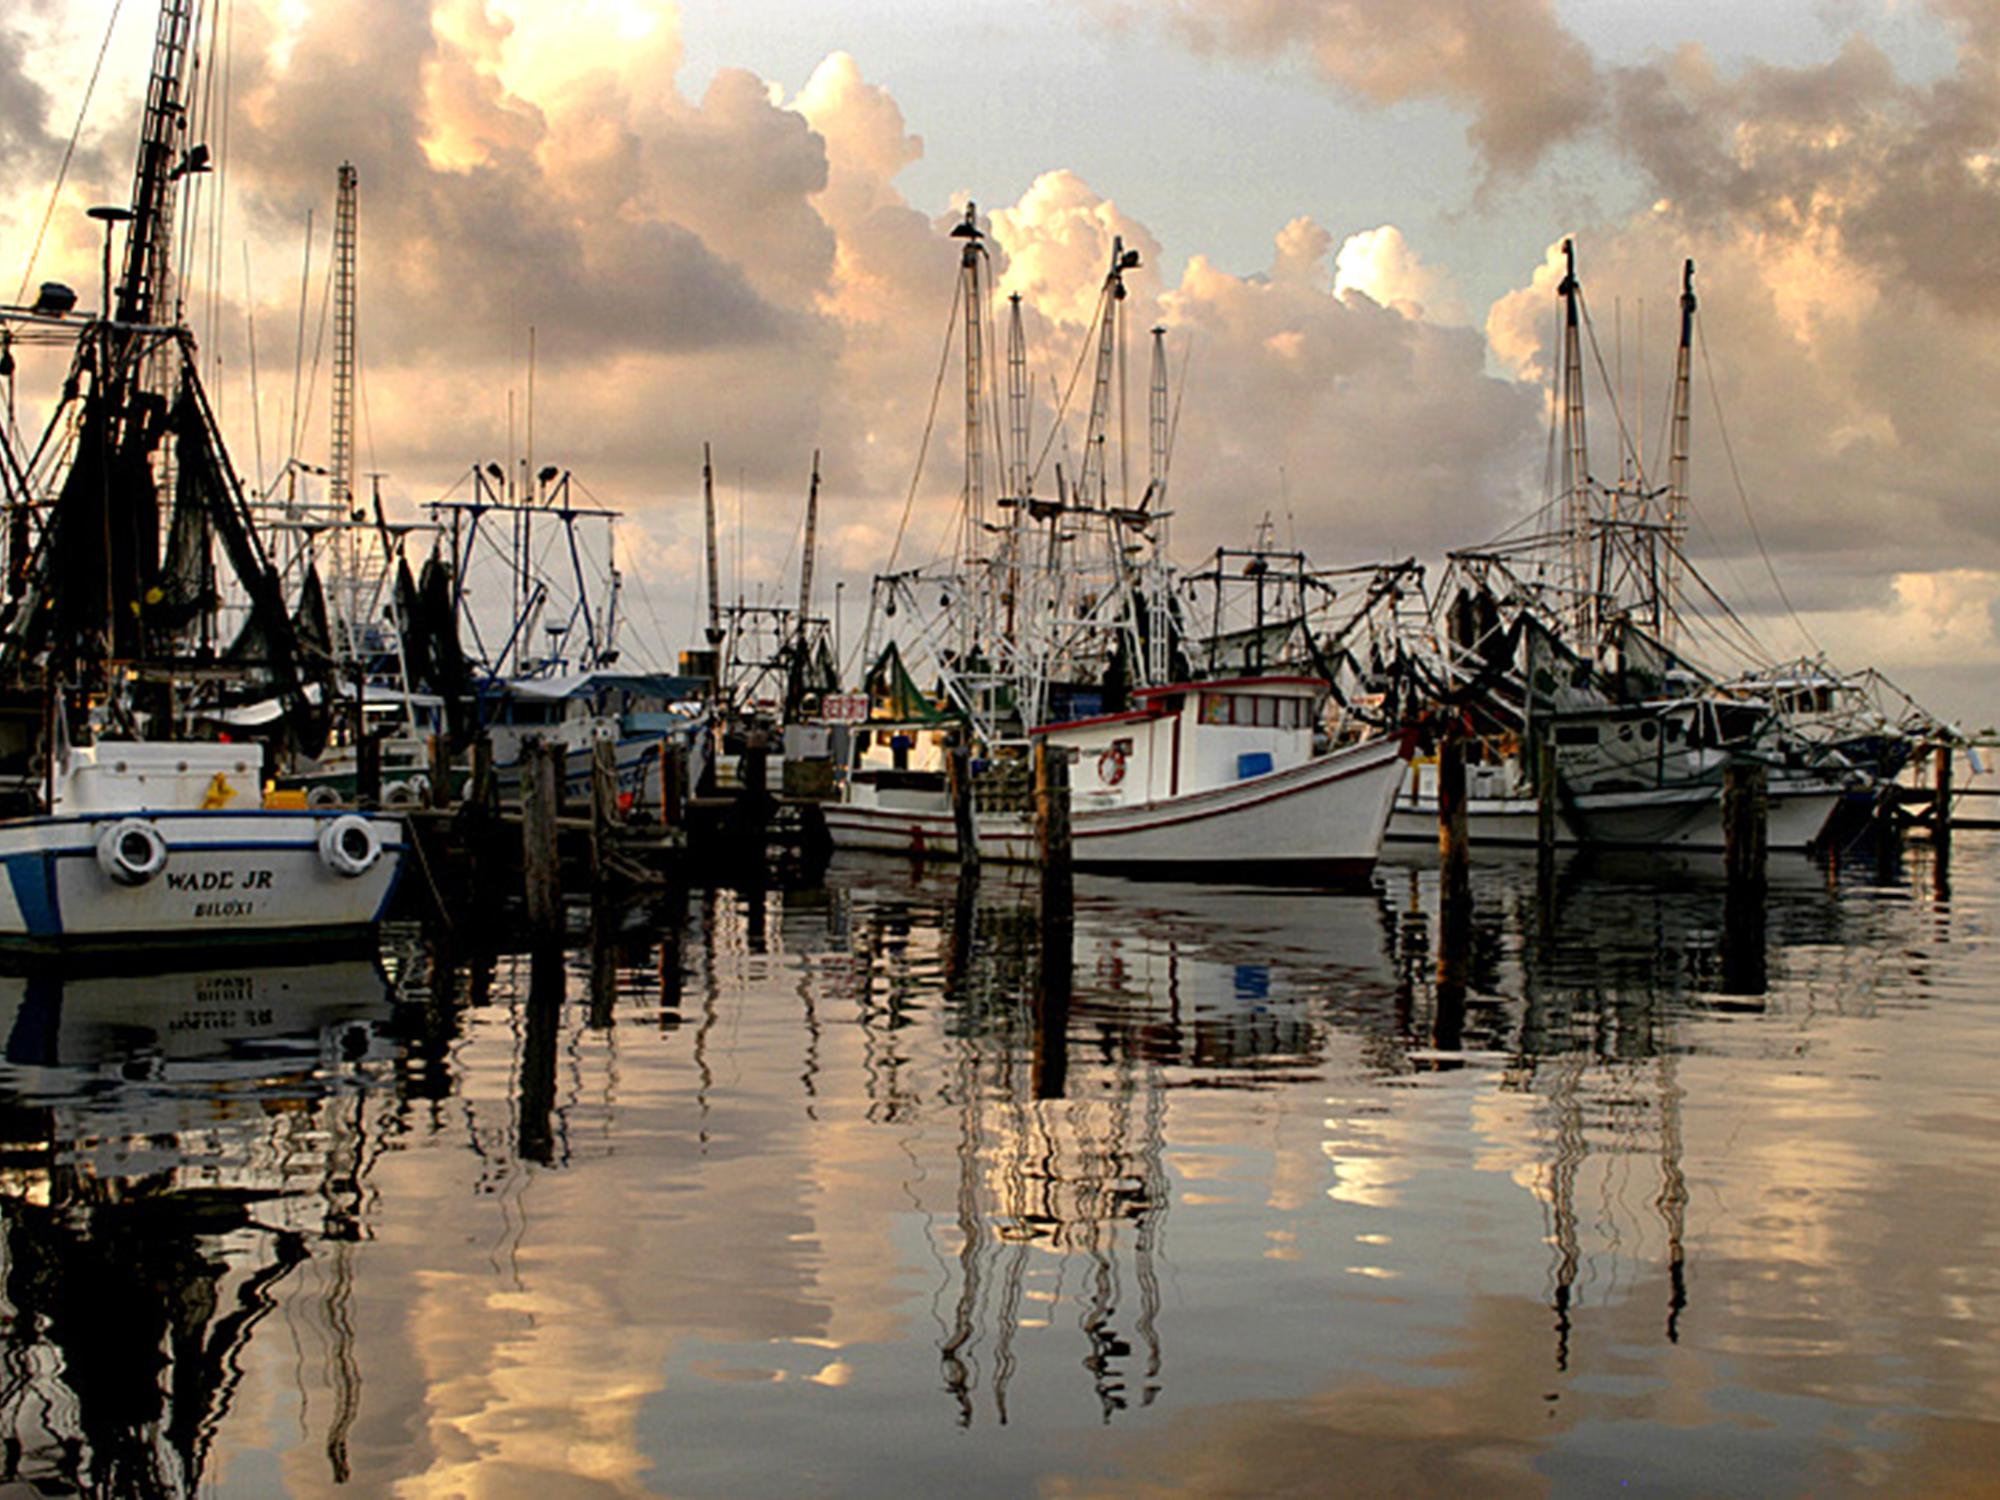 Low prices and an unusual season are making it difficult for Mississippi fishermen to harvest the state's shrimp crop. (Photo by MSU Extension/Dave Burrage)